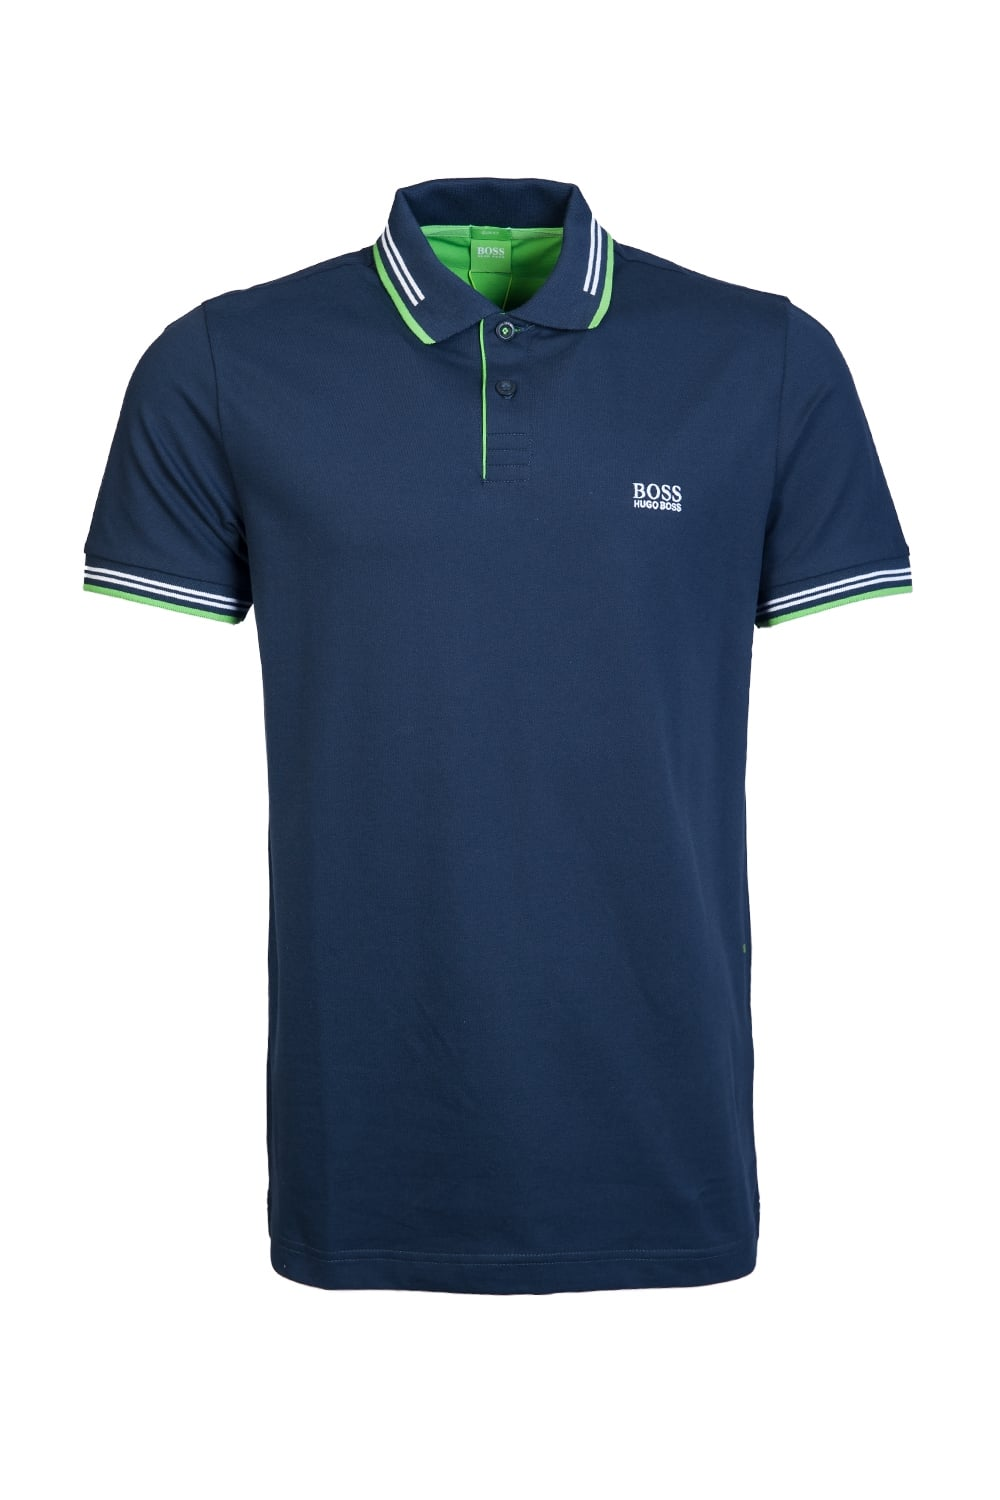 Boss green polo shirts model paul 50332503 clothing for Order company polo shirts